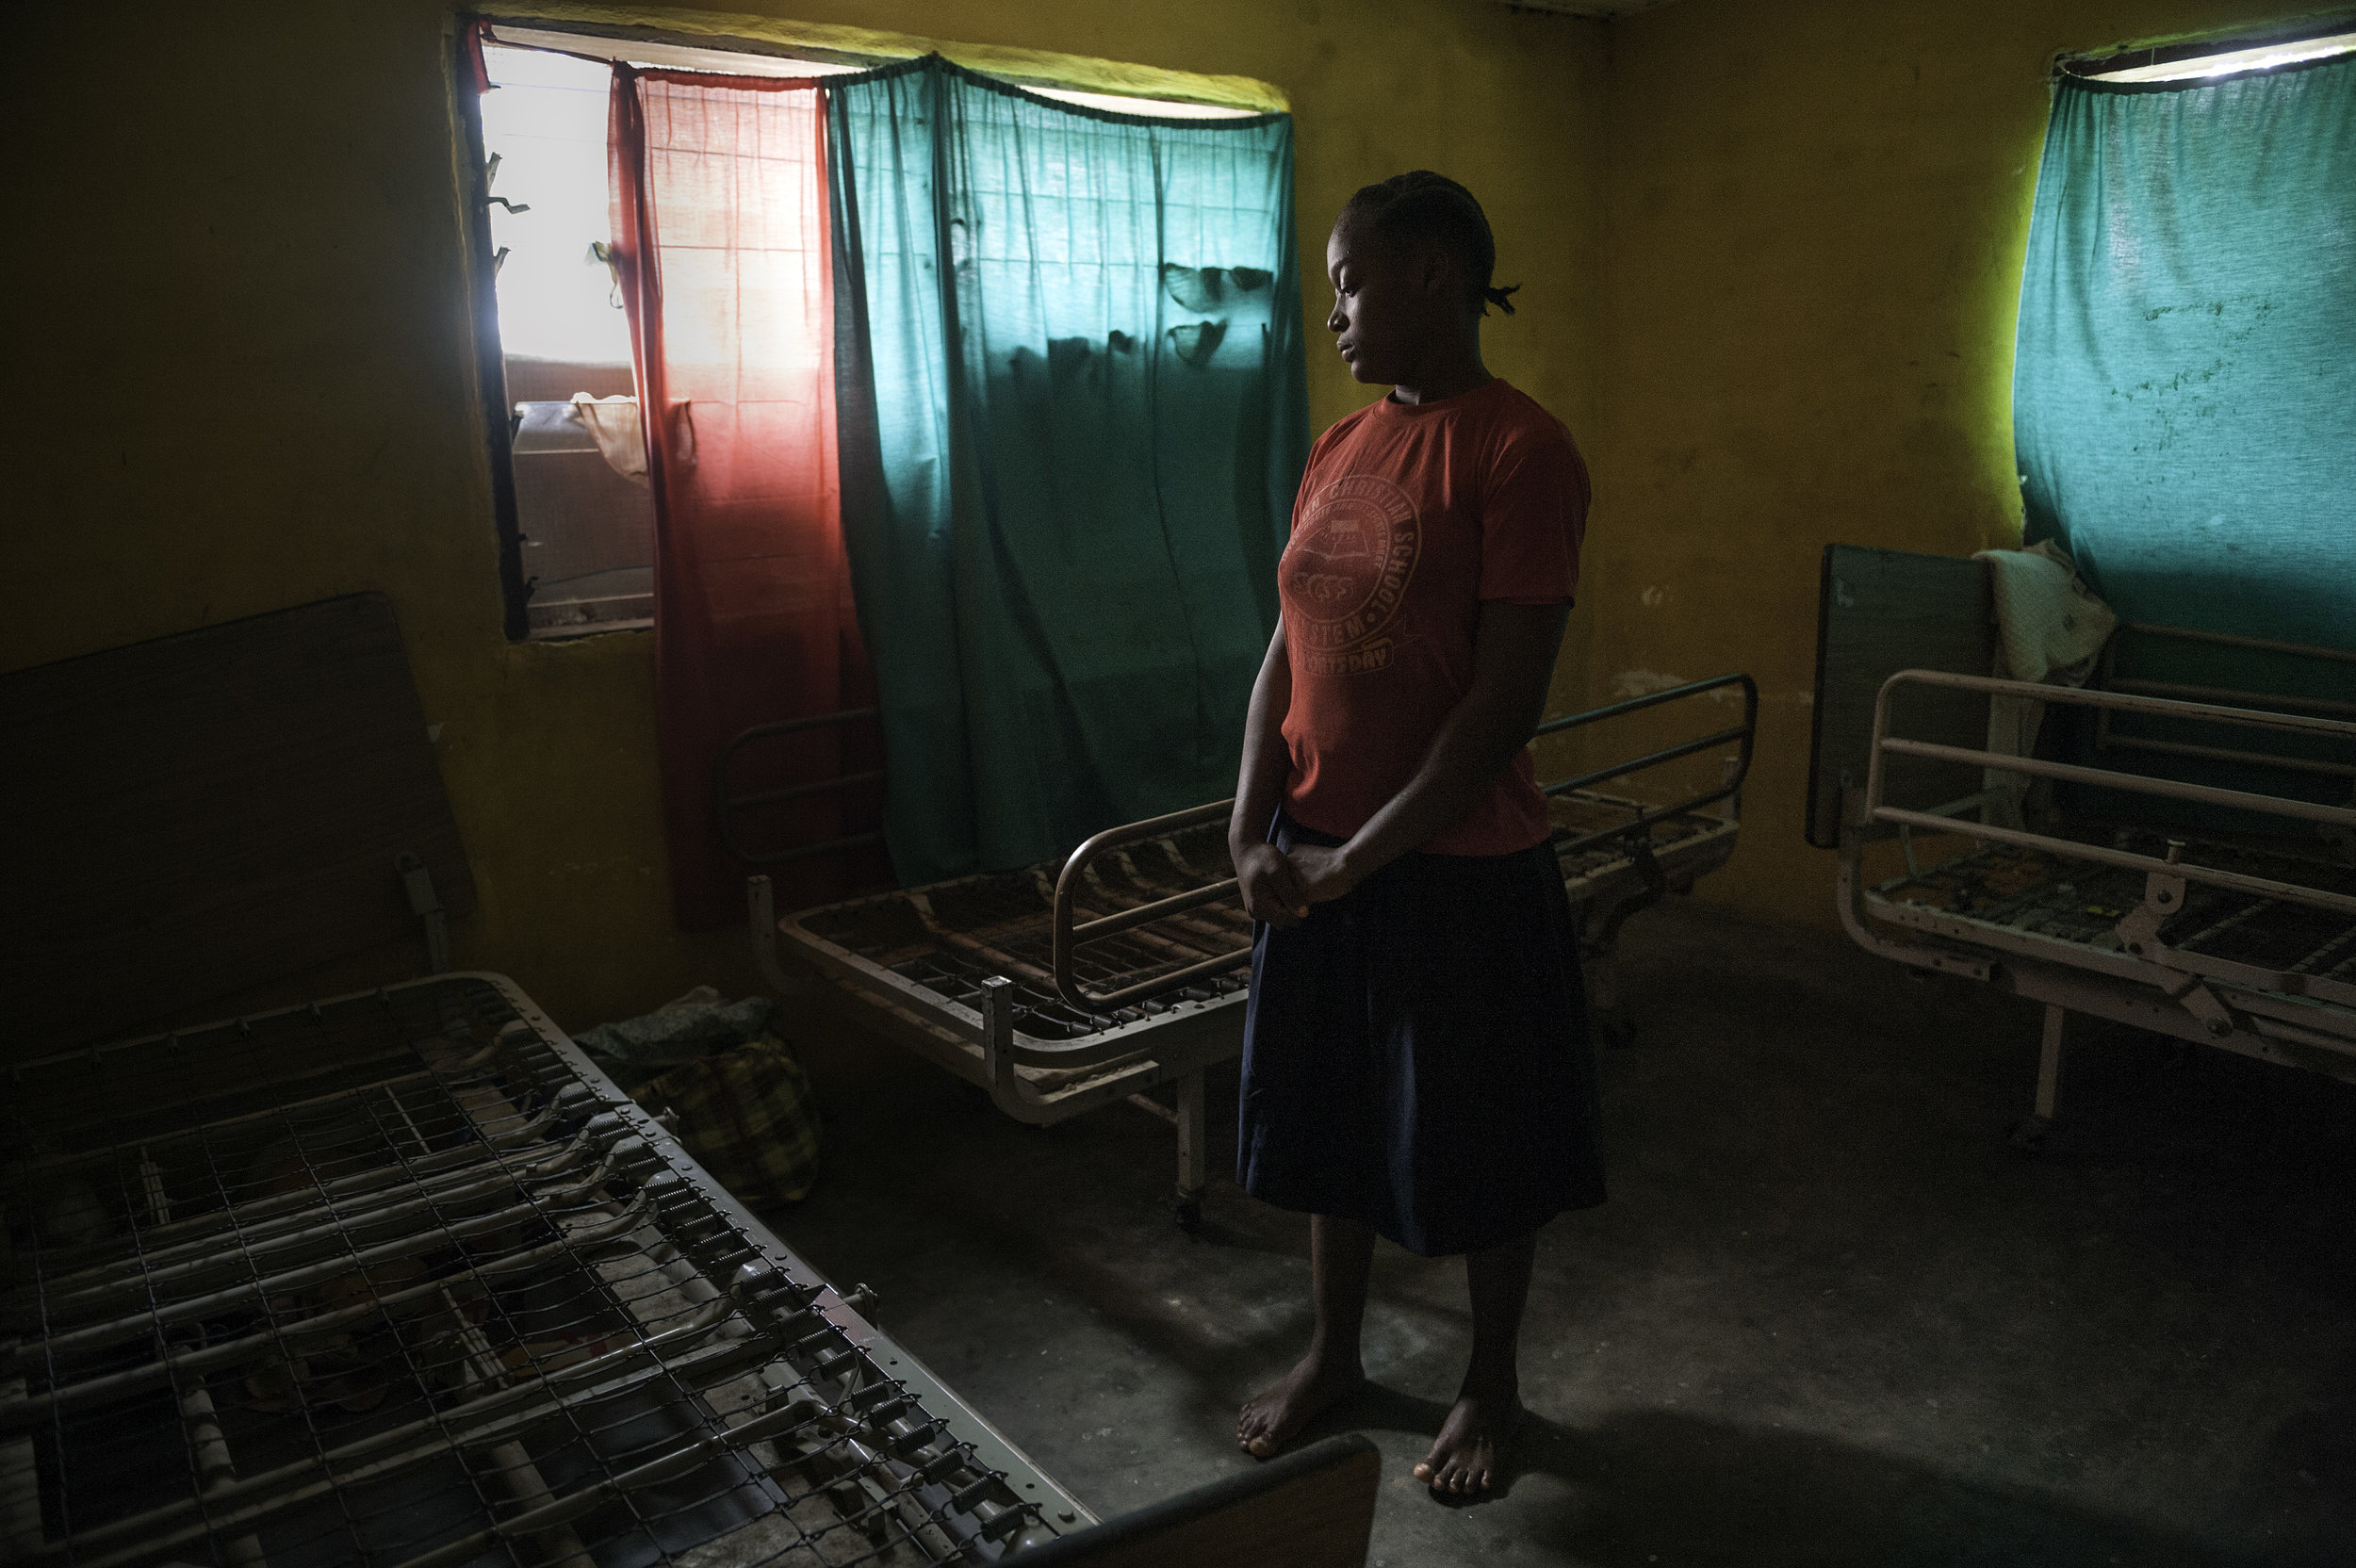 LIVING WITH FISTULA - Barbara Alfred, 15, lives in an orphanage in Monrovia, Liberia. She was raped by two of her uncles and left with a fistula that makes her unable to control her urine. She has been isolated from others at the orphanage and has been forced to sleep on only metal springs.